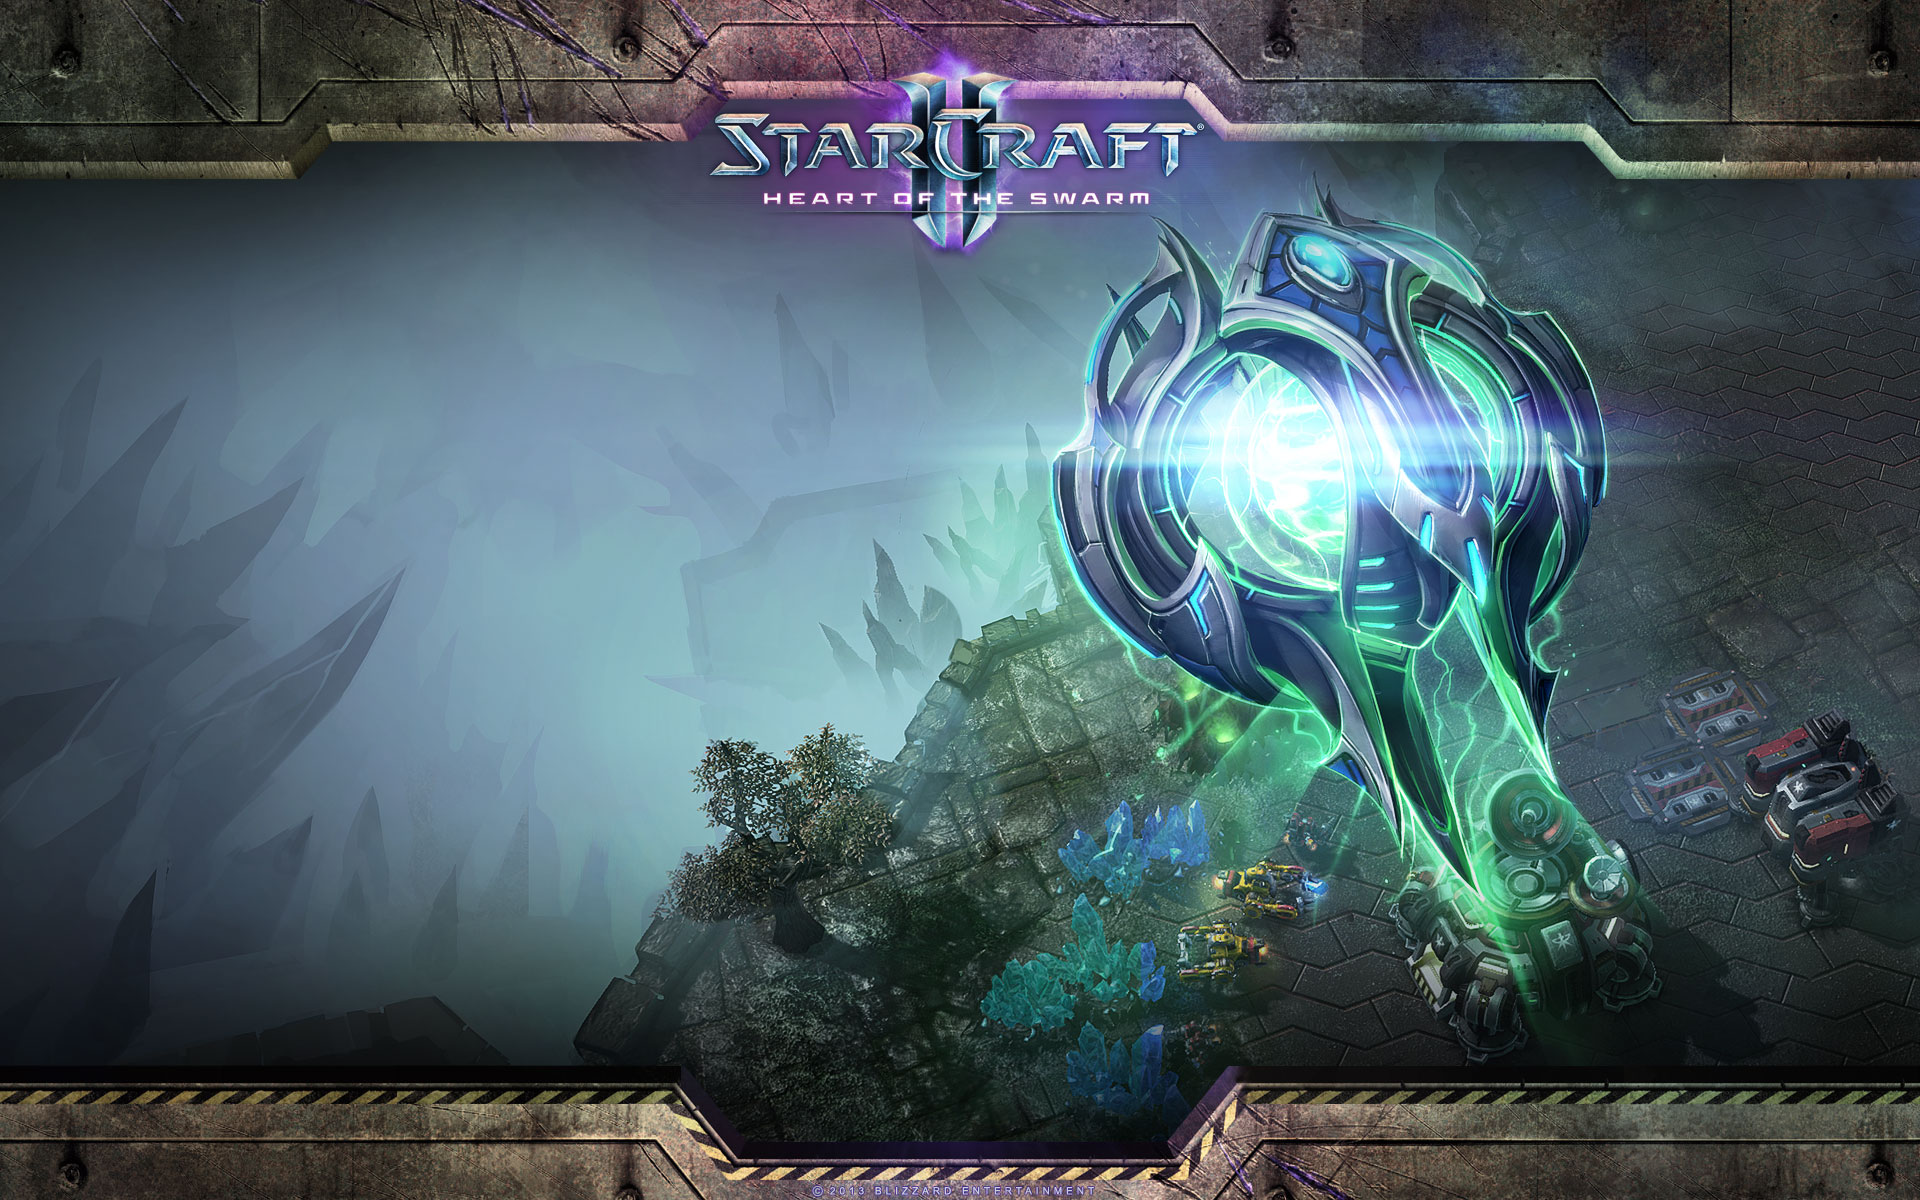 Oracle Starcraft Ii Heart Of The Swarm Mystery Wallpaper